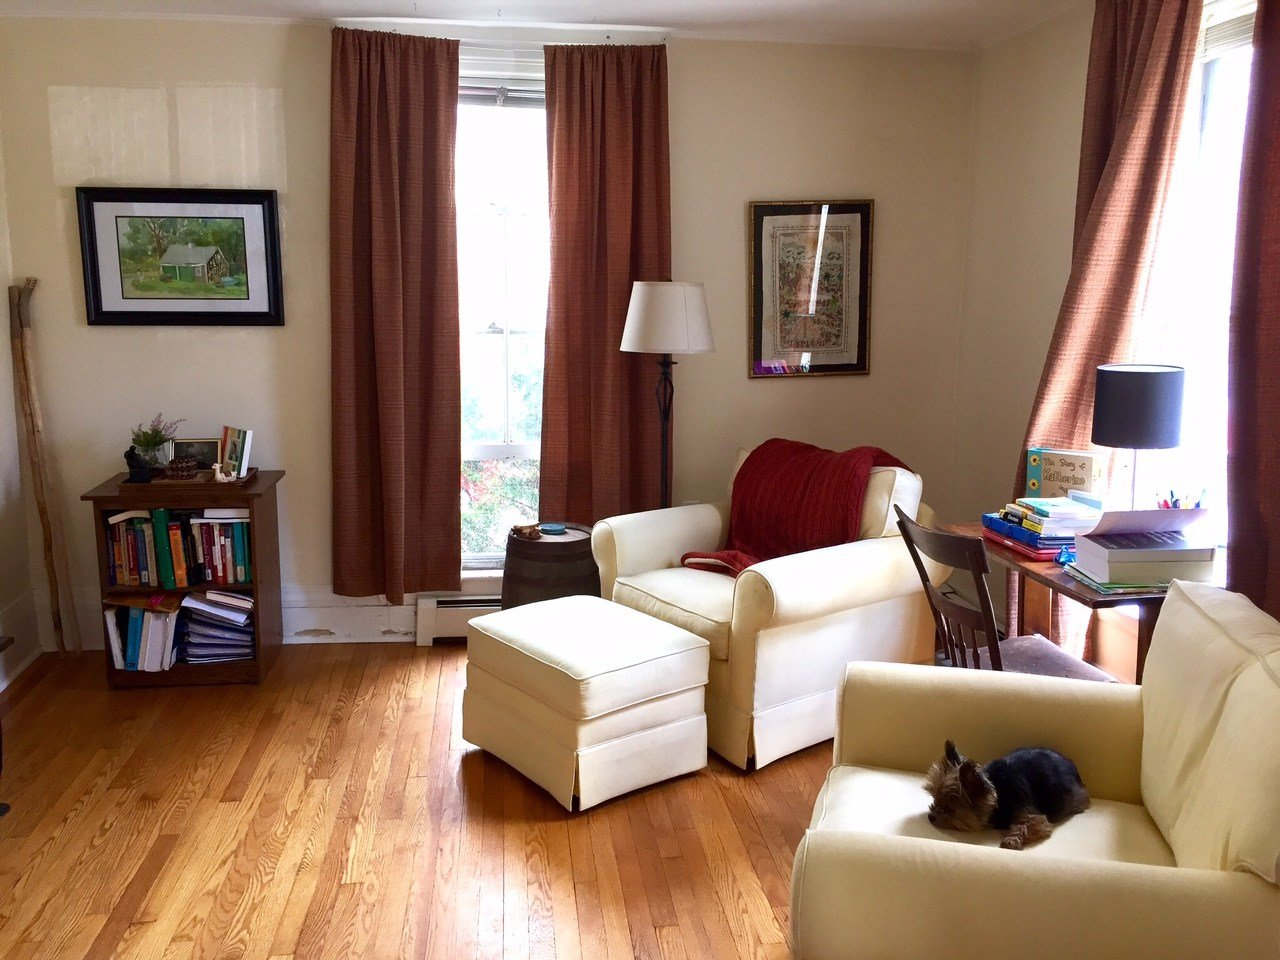 Best All Utilities Included In Spacious 1 Bedroom On West End With Pictures Original 1024 x 768